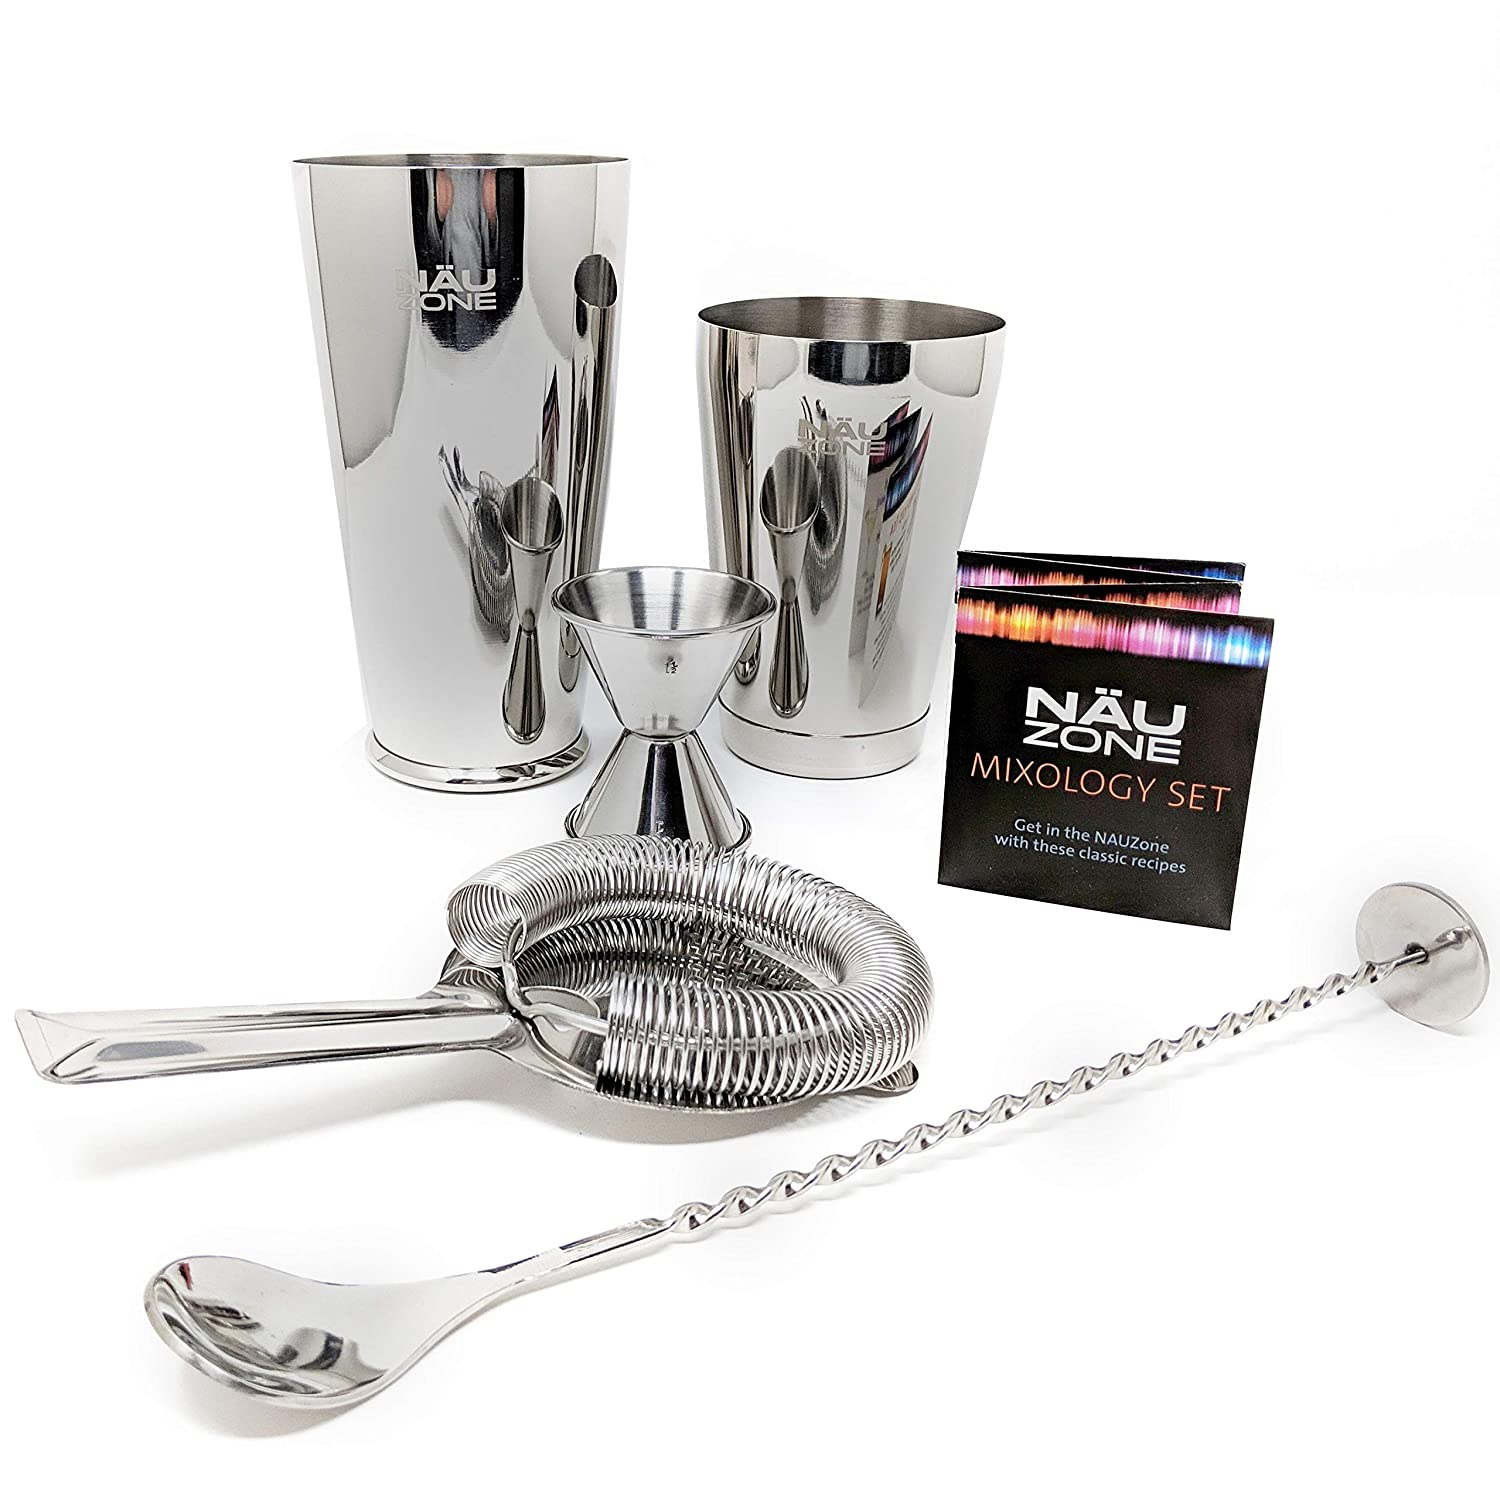 Professional Bartender Set | 5 Piece Restaurant Quality 28 oz Weighted Bottom Boston Cocktail Shaker Bar Kit. Bar Set Includes Essential Barware Tools to make any Mixed Drink | Deluxe Packaging